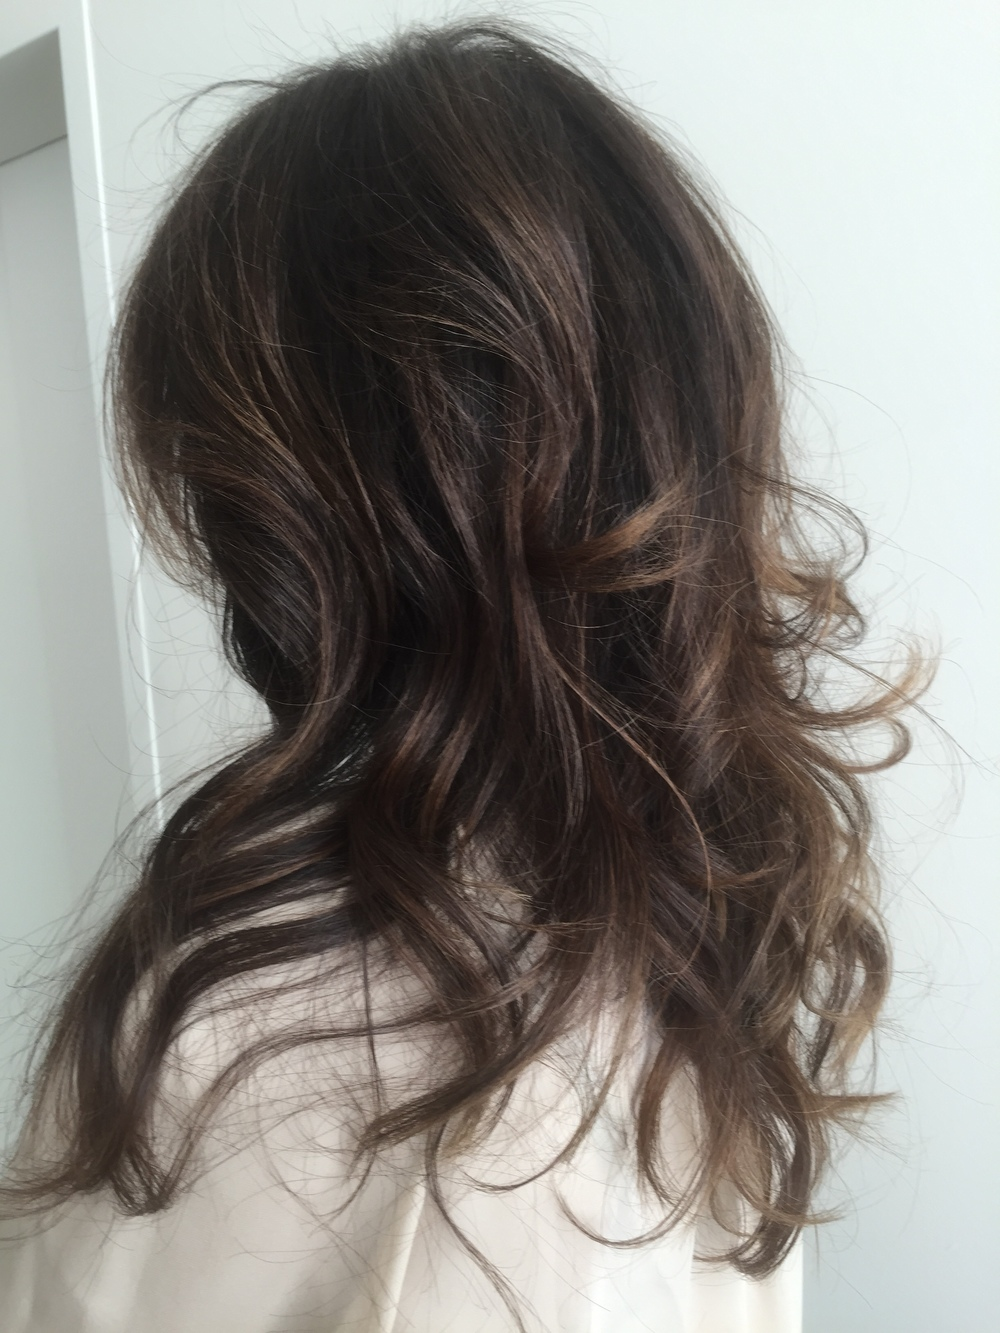 HairColorByCarlos-brunette-loose_curls.JPG